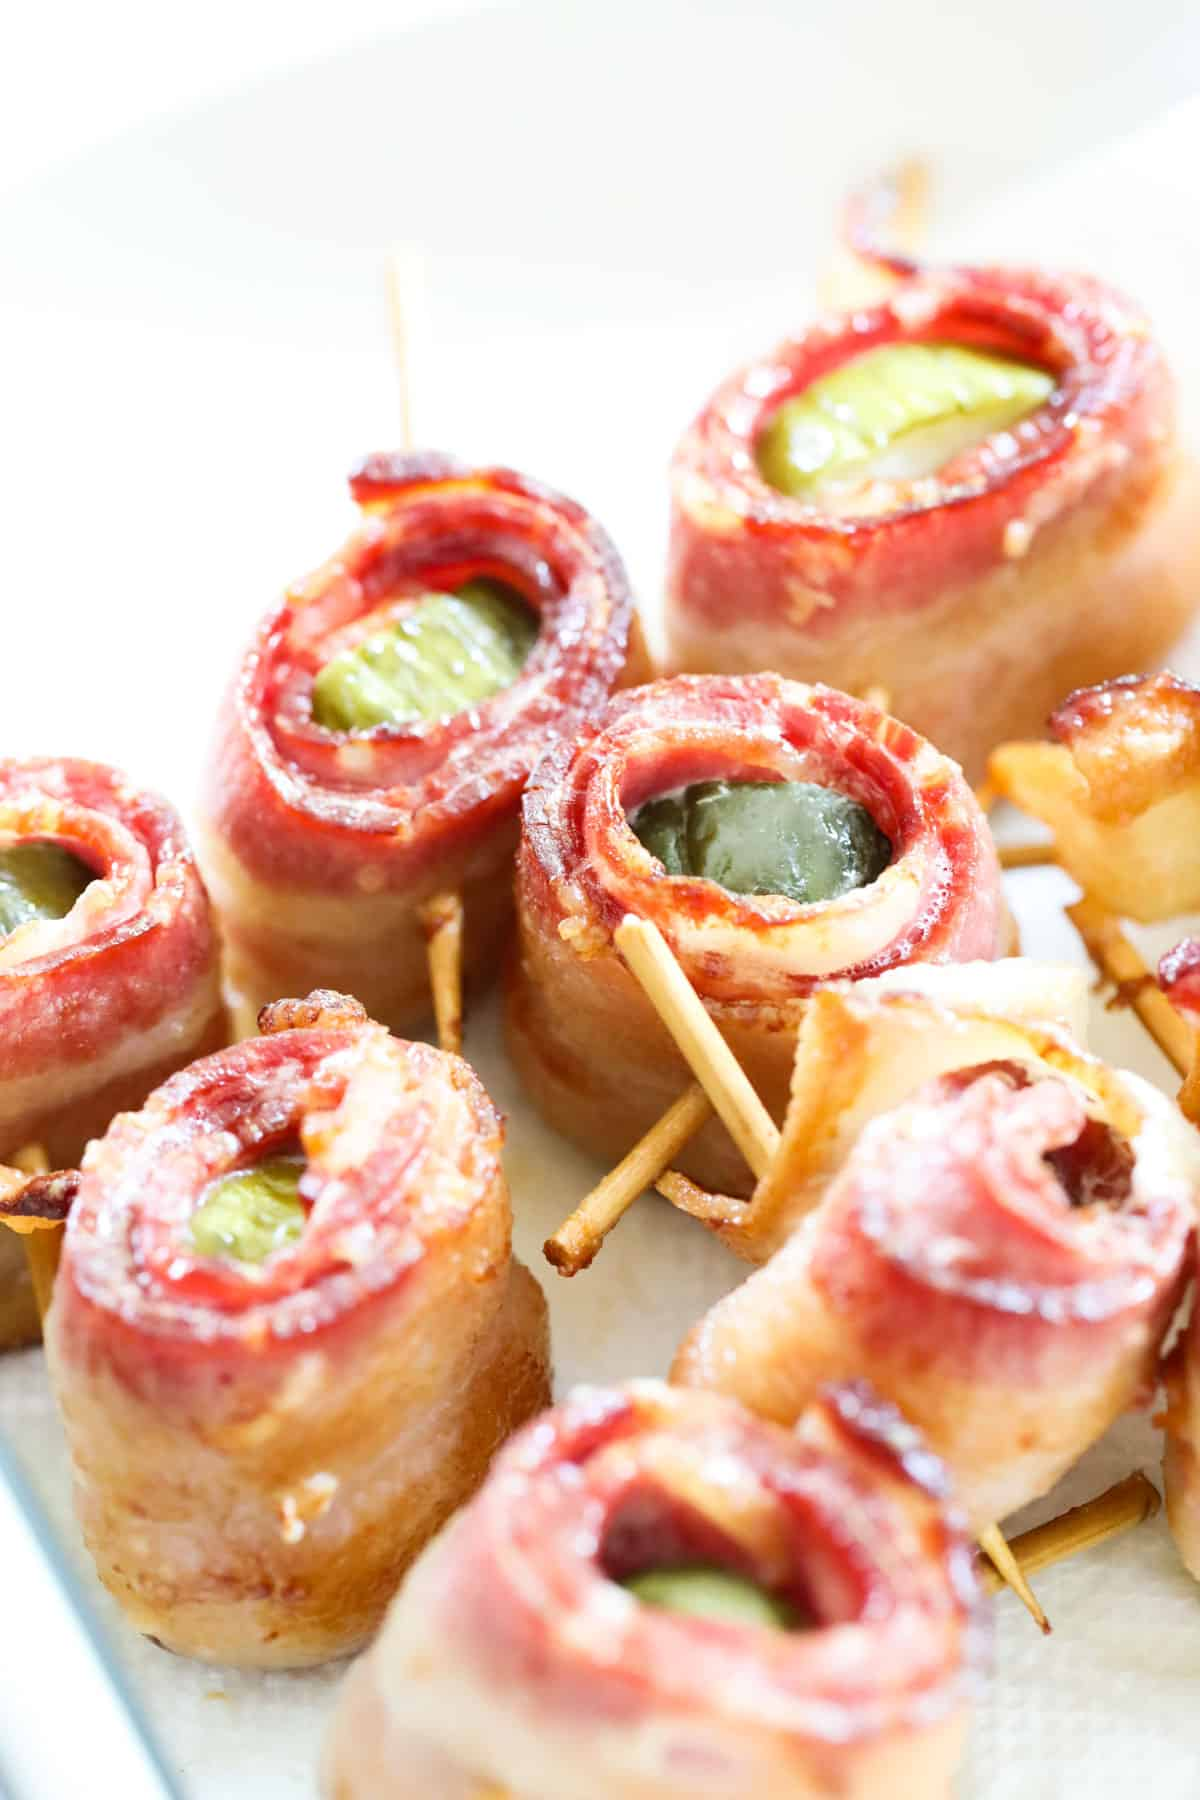 air fryer pickles wrapped in bacon with toothpicks